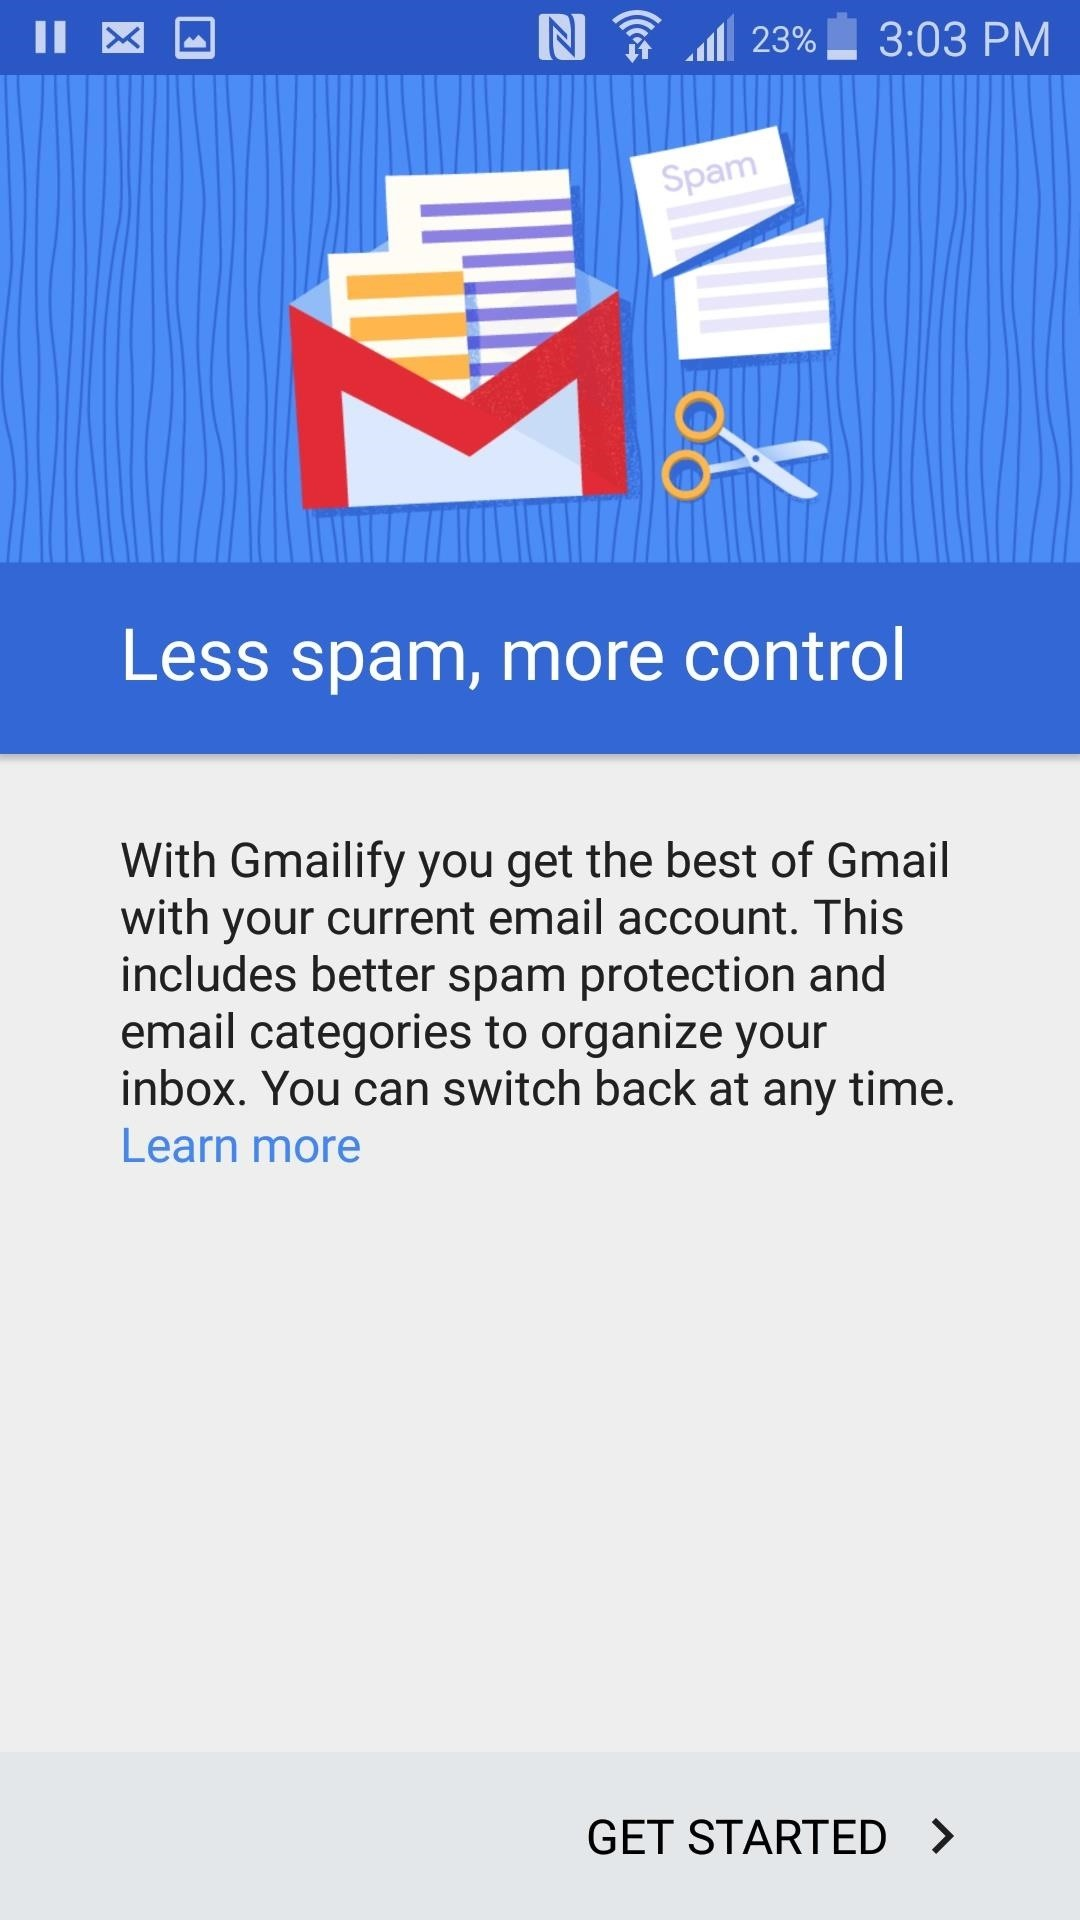 Gmail Introduces Gmailify, a Better Way to Manage Your Non-Gmail Email Accounts